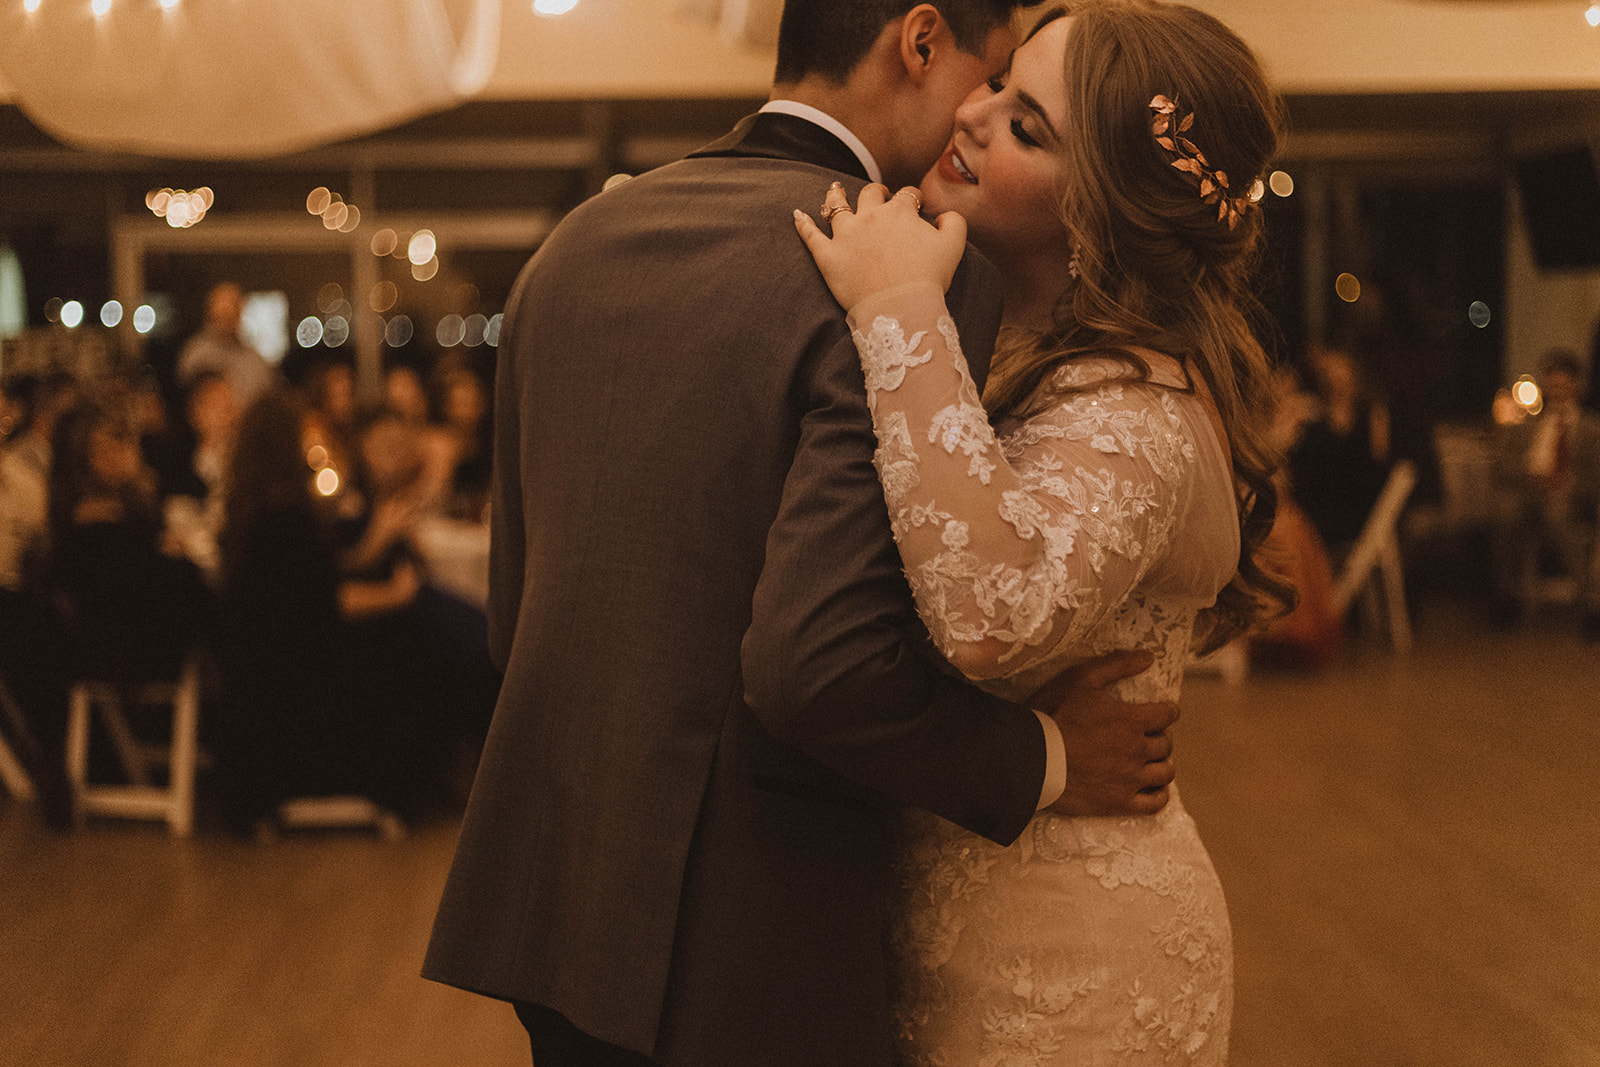 UBC Newlyweds first dance surrounded by lights and guests in Vancouver